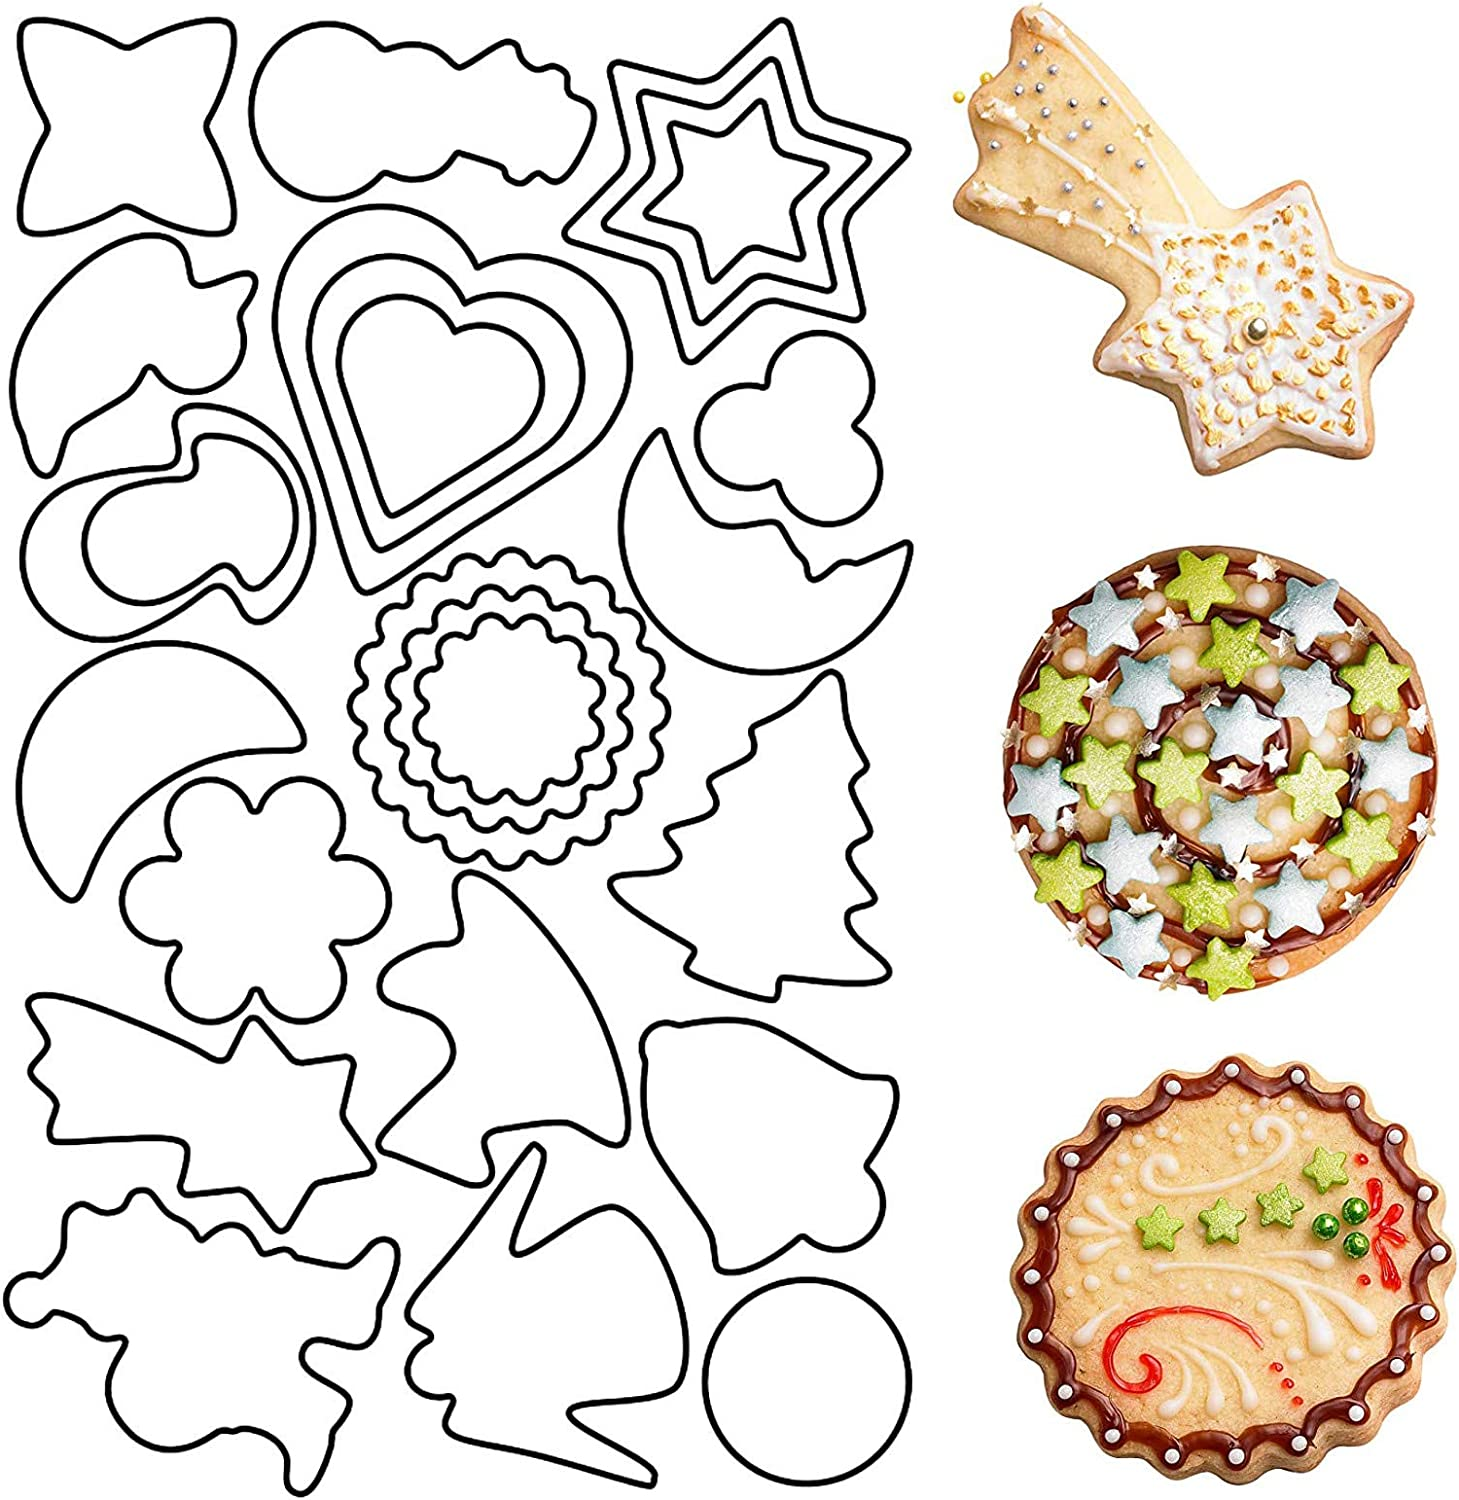 25 PCS Holiday Cookie Pack Cutters Shapes Al sold out. Variety Finally resale start